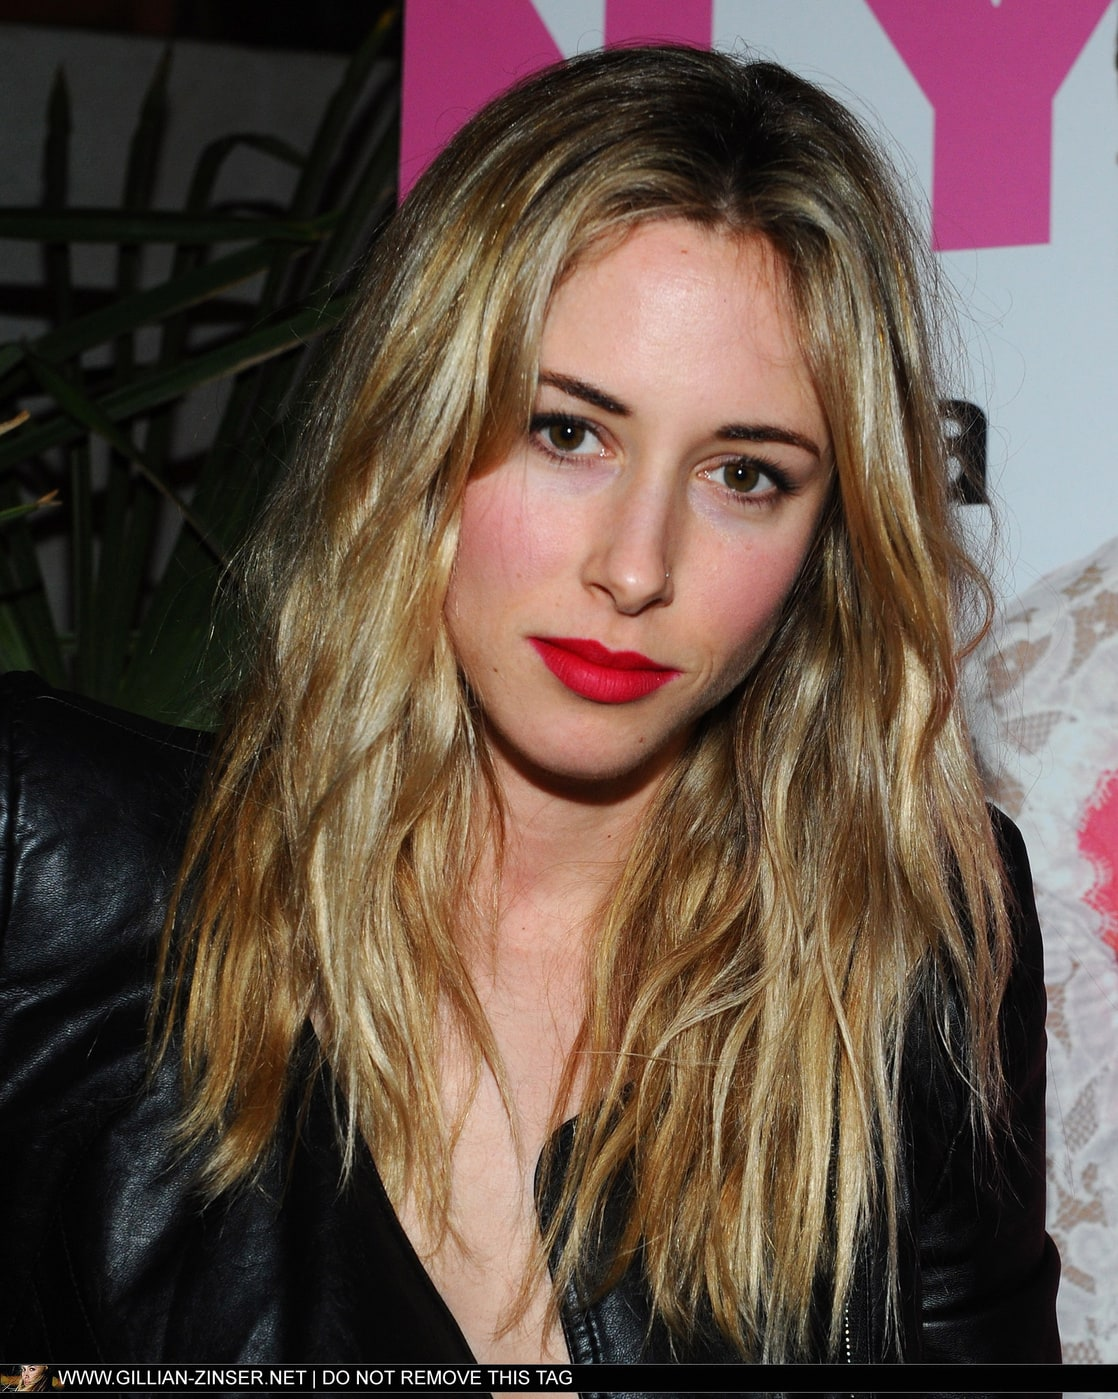 gillian zinser weight